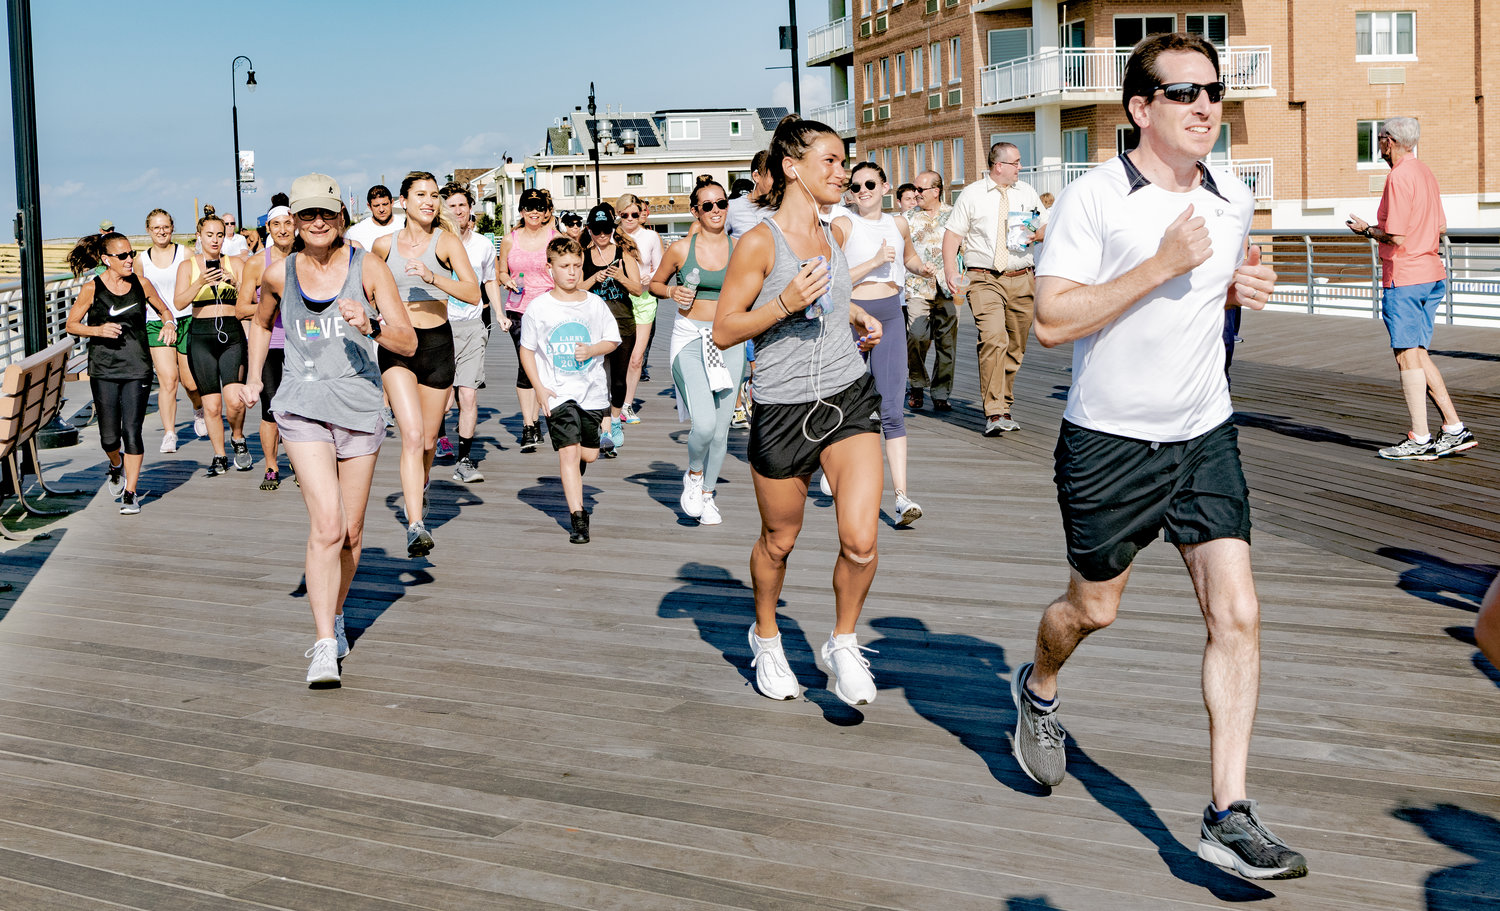 More than 100 people, including State Sen. Todd Kaminsky, right, gathered on the boardwalk at New York Avenue on Aug. 3 for the seventh annual Larry Elovich 5K Memorial Fun Run. The event is hosted each year by the Larry Elovich Scholarship Fund, in cooperation with the city.